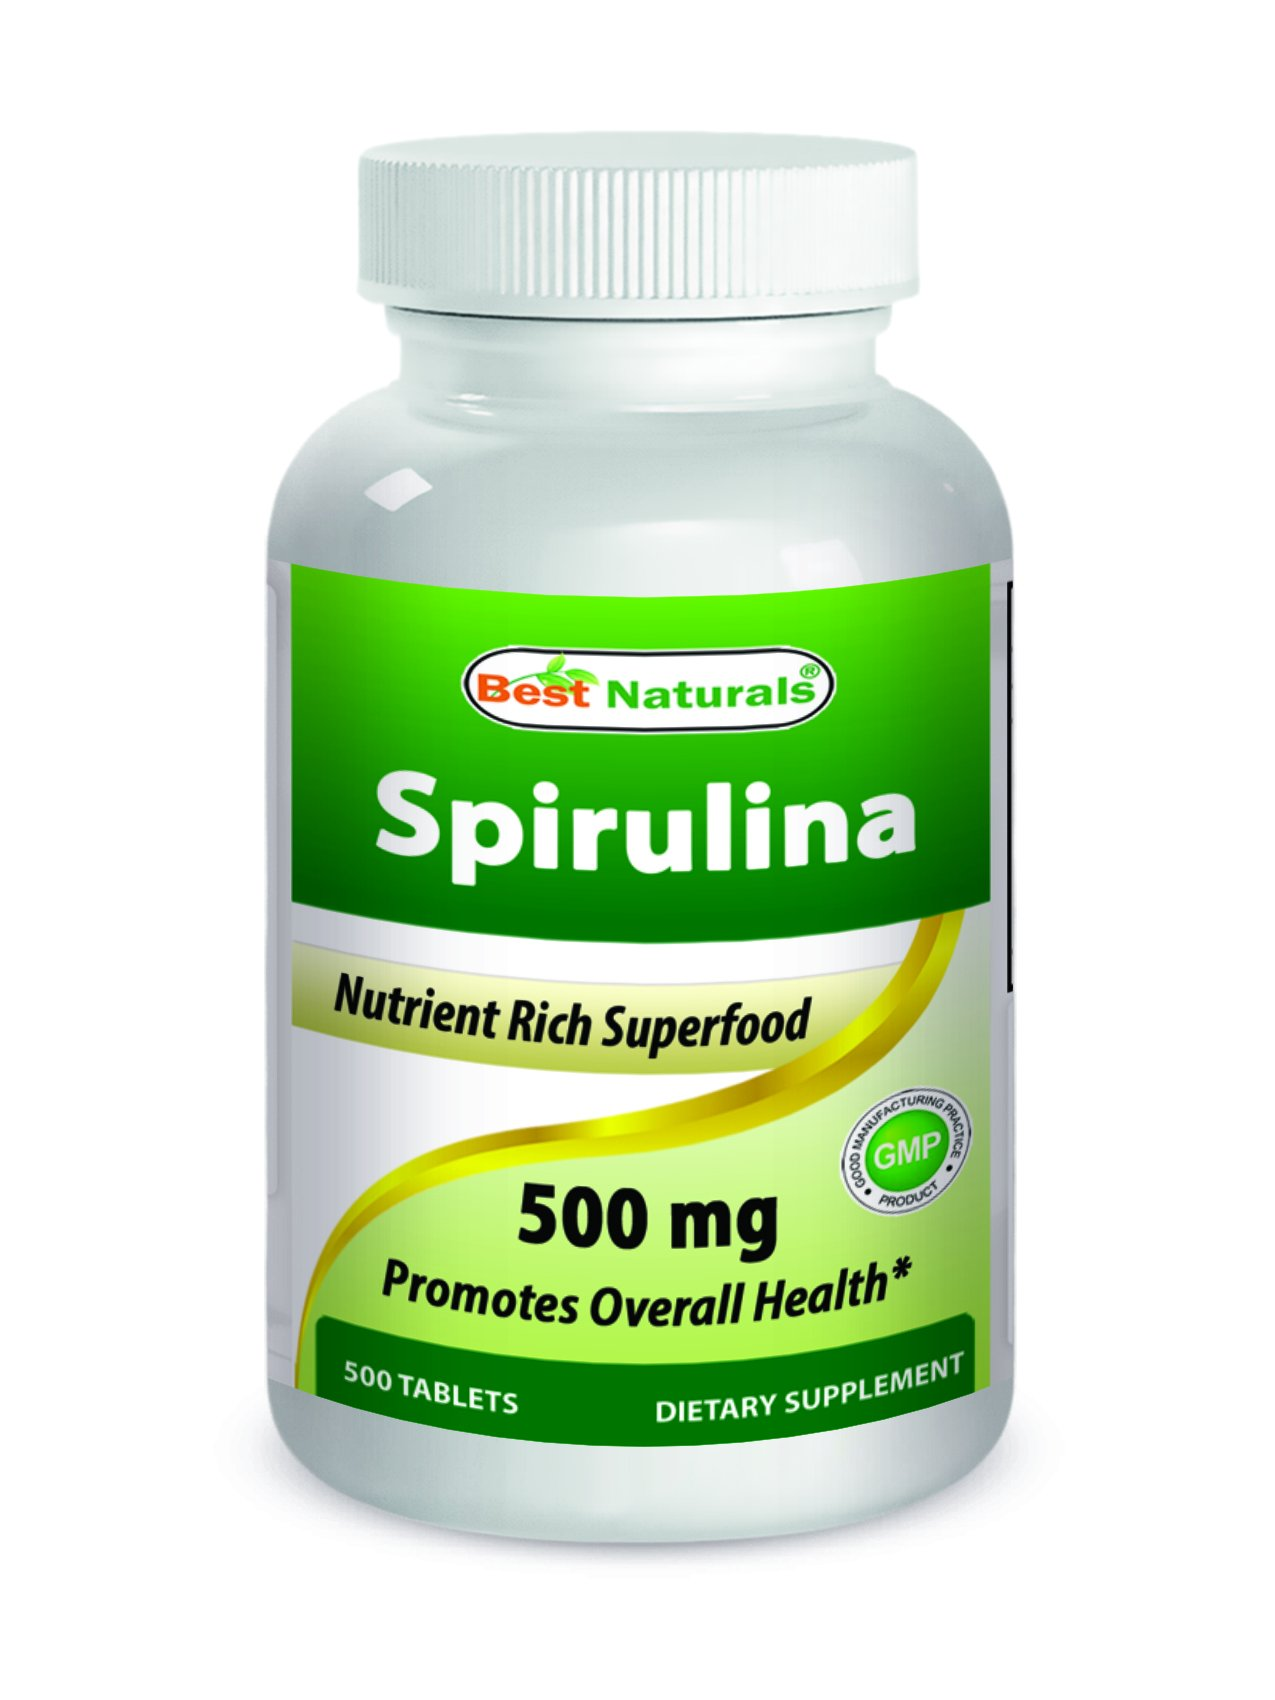 Best Naturals Spirulina 500 mg 500 Tablets